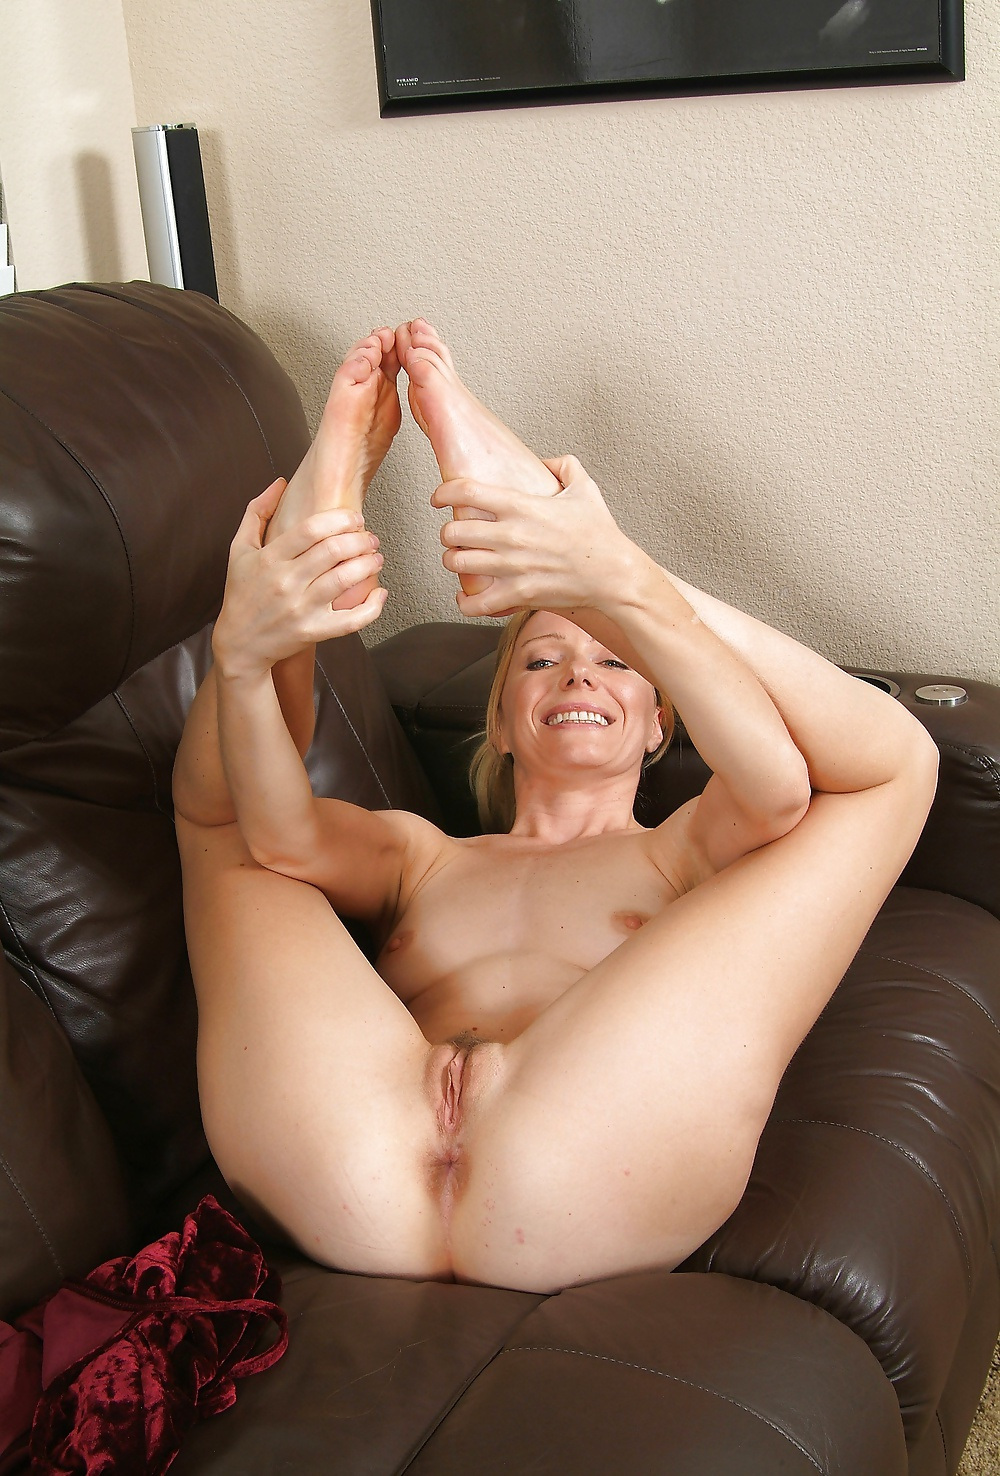 pussy-milf-foot-best-leakednude-photos-ever